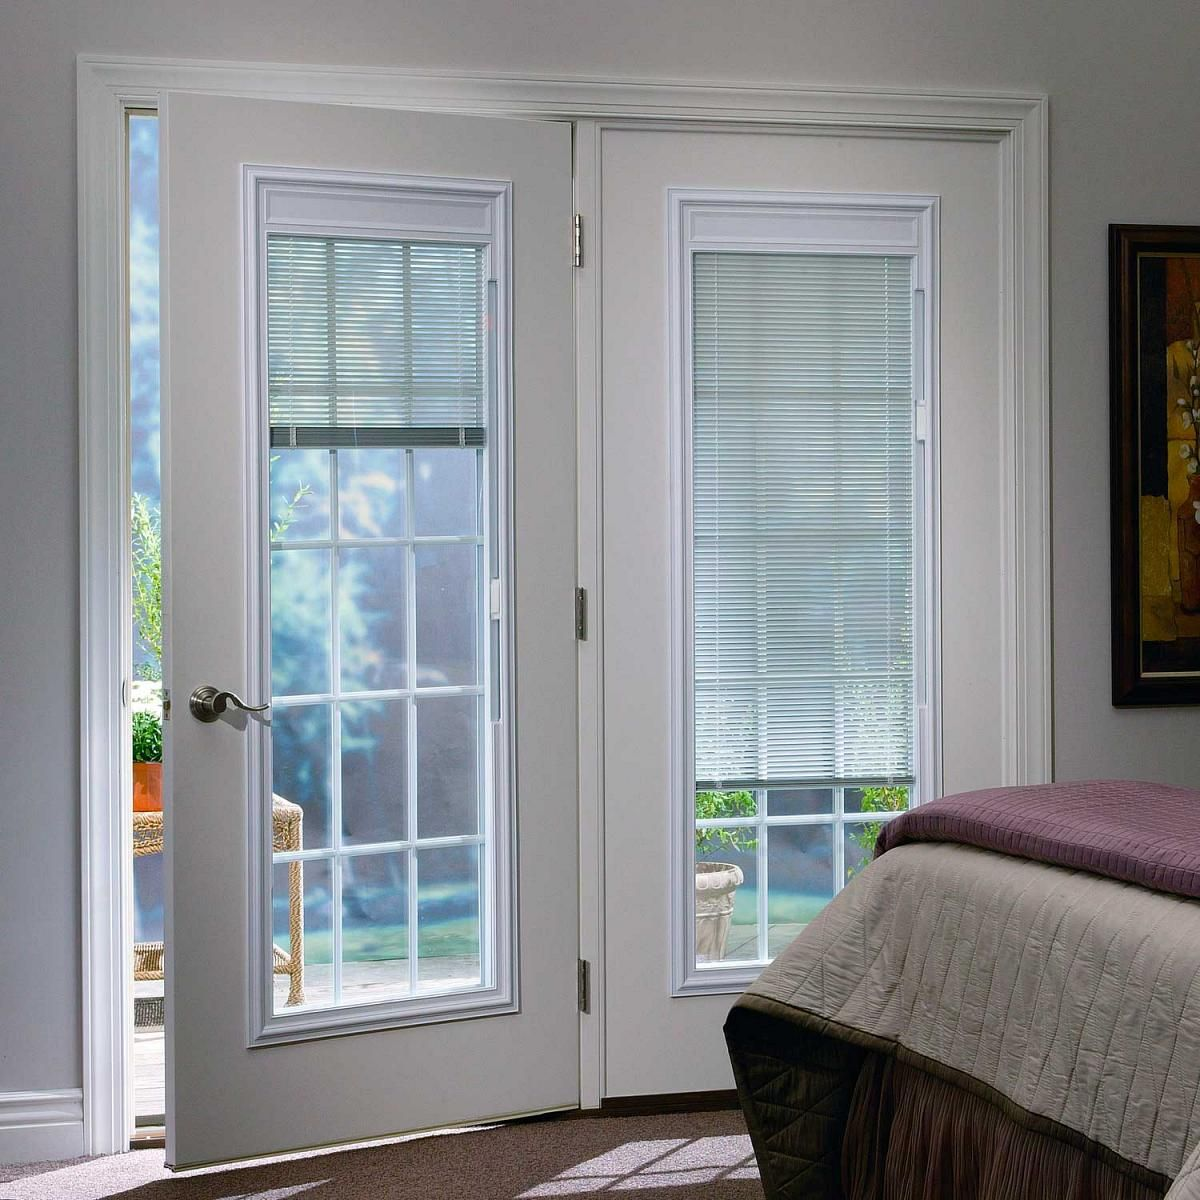 Odl Enclosed Blinds Built In Door Window Treatments For Entry Doors Shades For French Doors Blinds For French Doors Enclosed Blinds